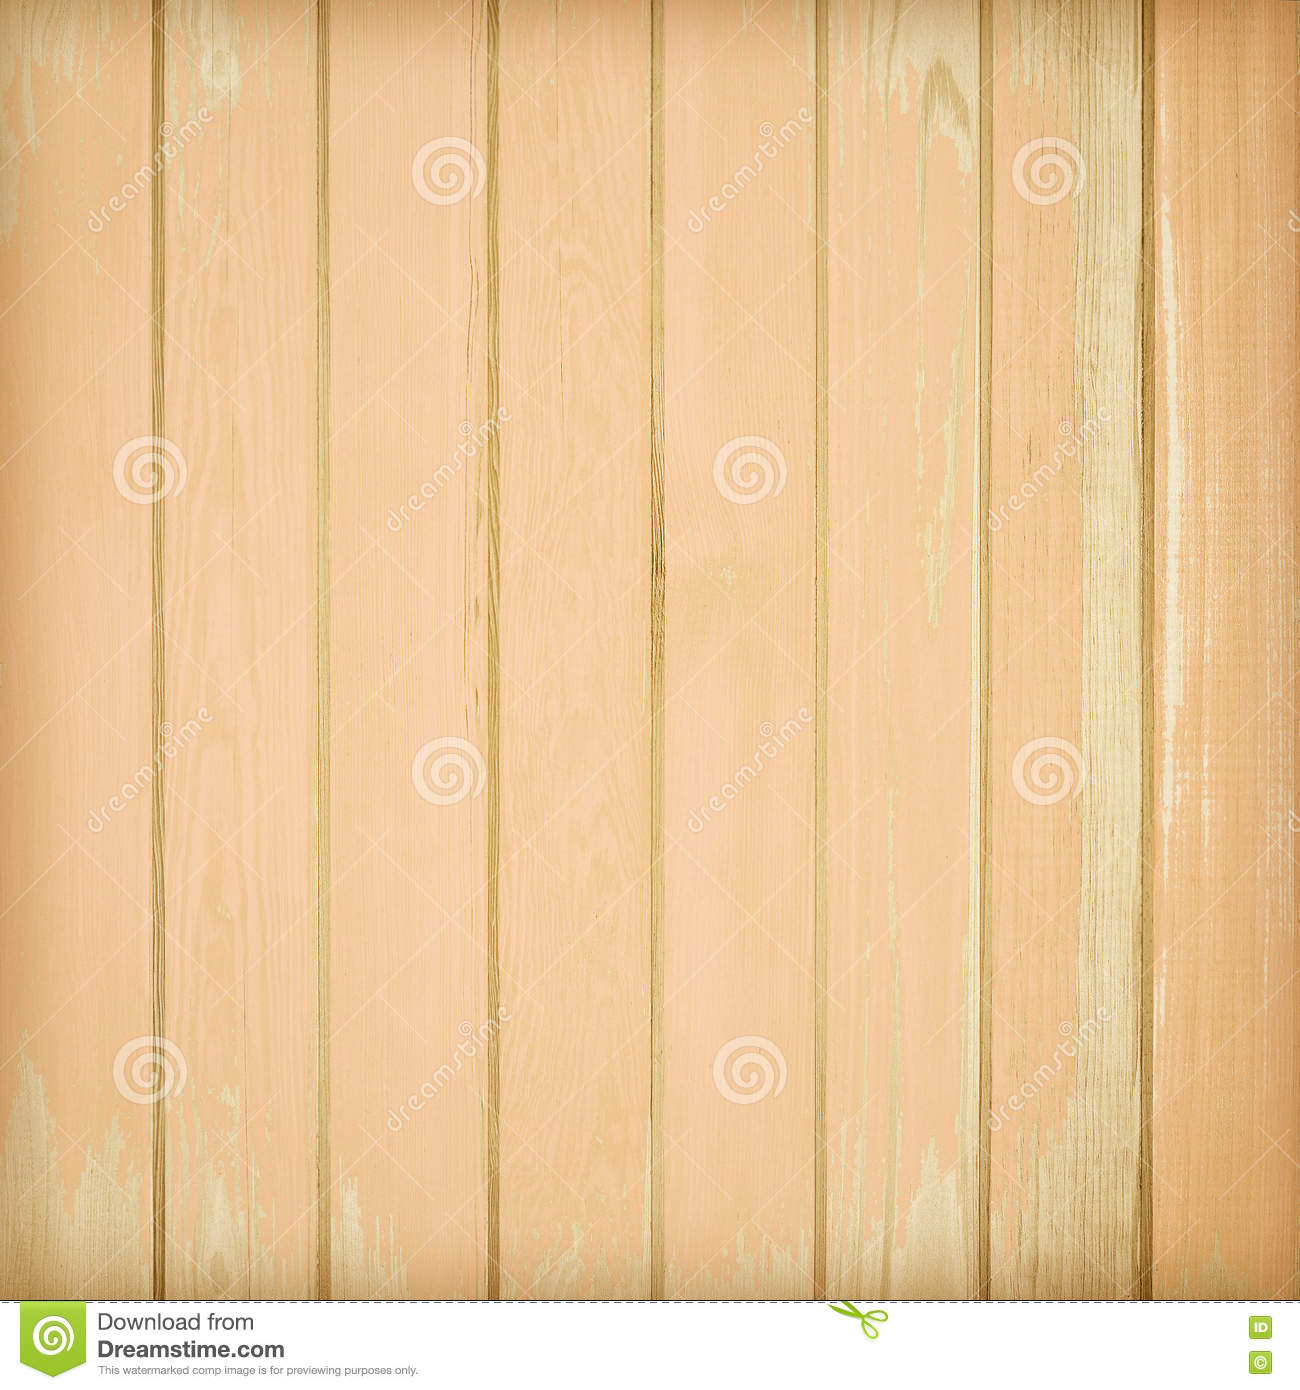 Wood Wall Texture Background; Orange Color Stock Image - Image of ...